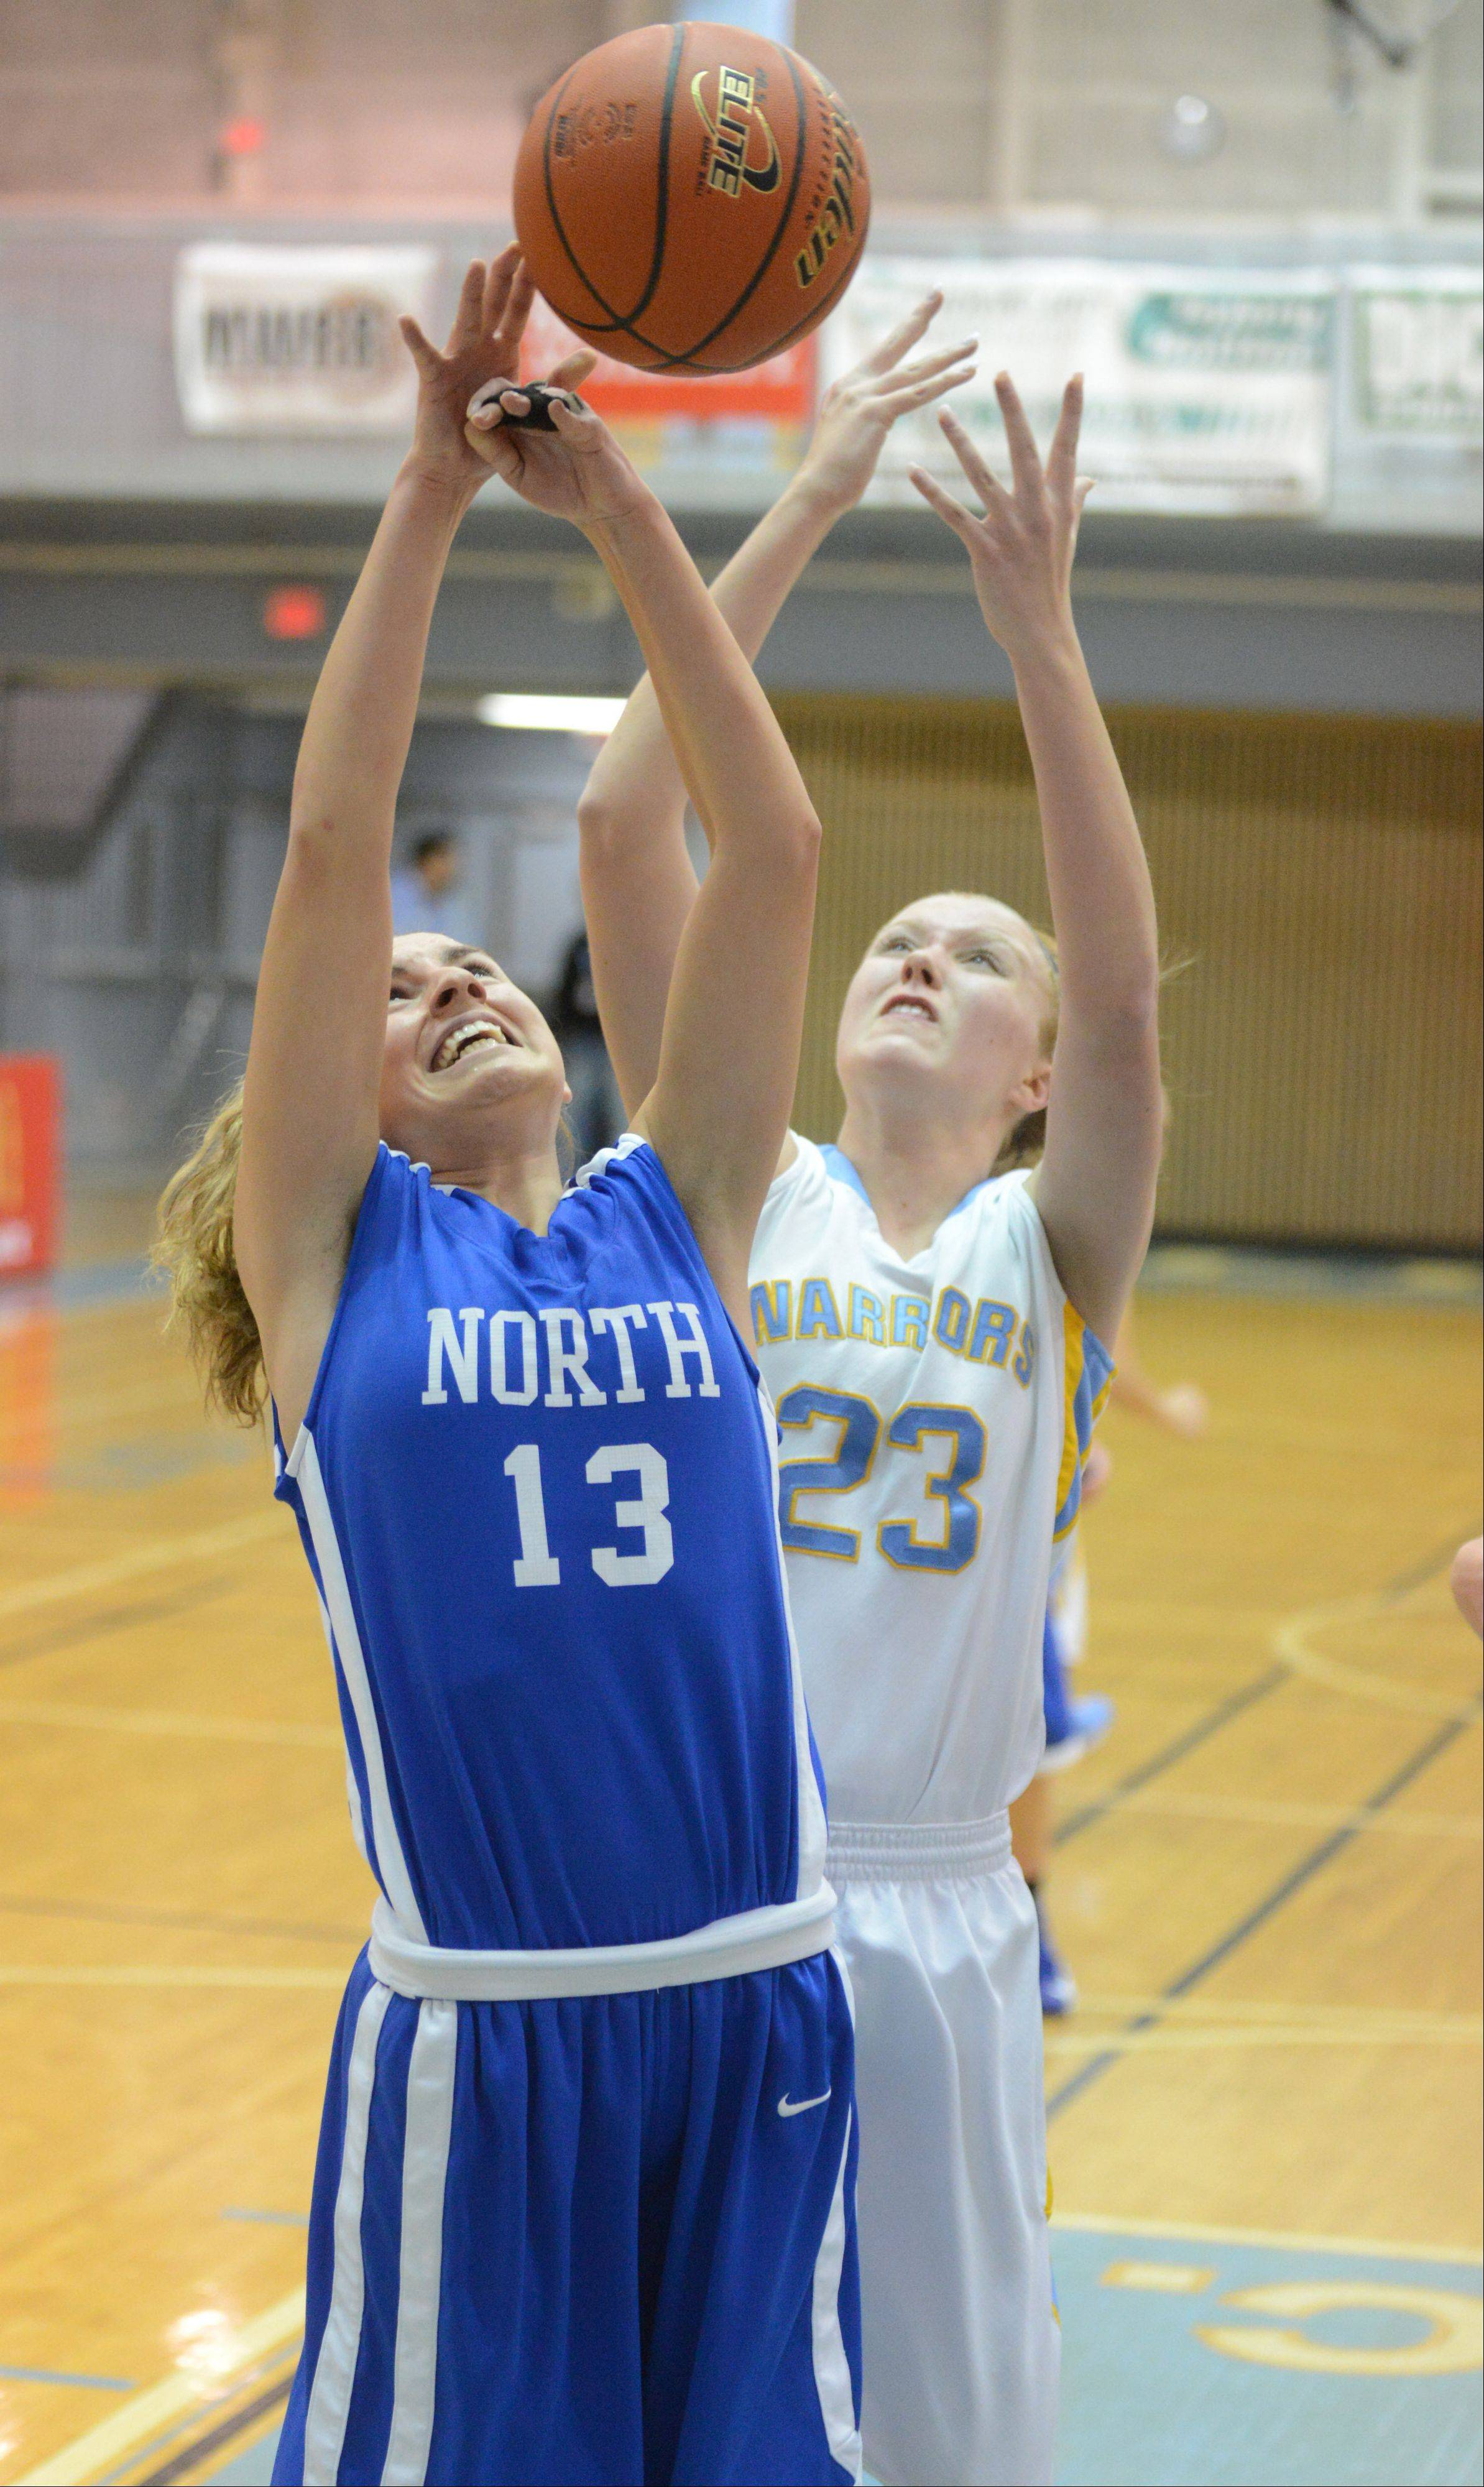 Ashley Collins of Main West,right, and Brooke Schanowski of Wheaton north go for a rebound during the Wheaton North vs. Maine West girls basketball game at McDonald's Shootout in Willowbrook Saturday.